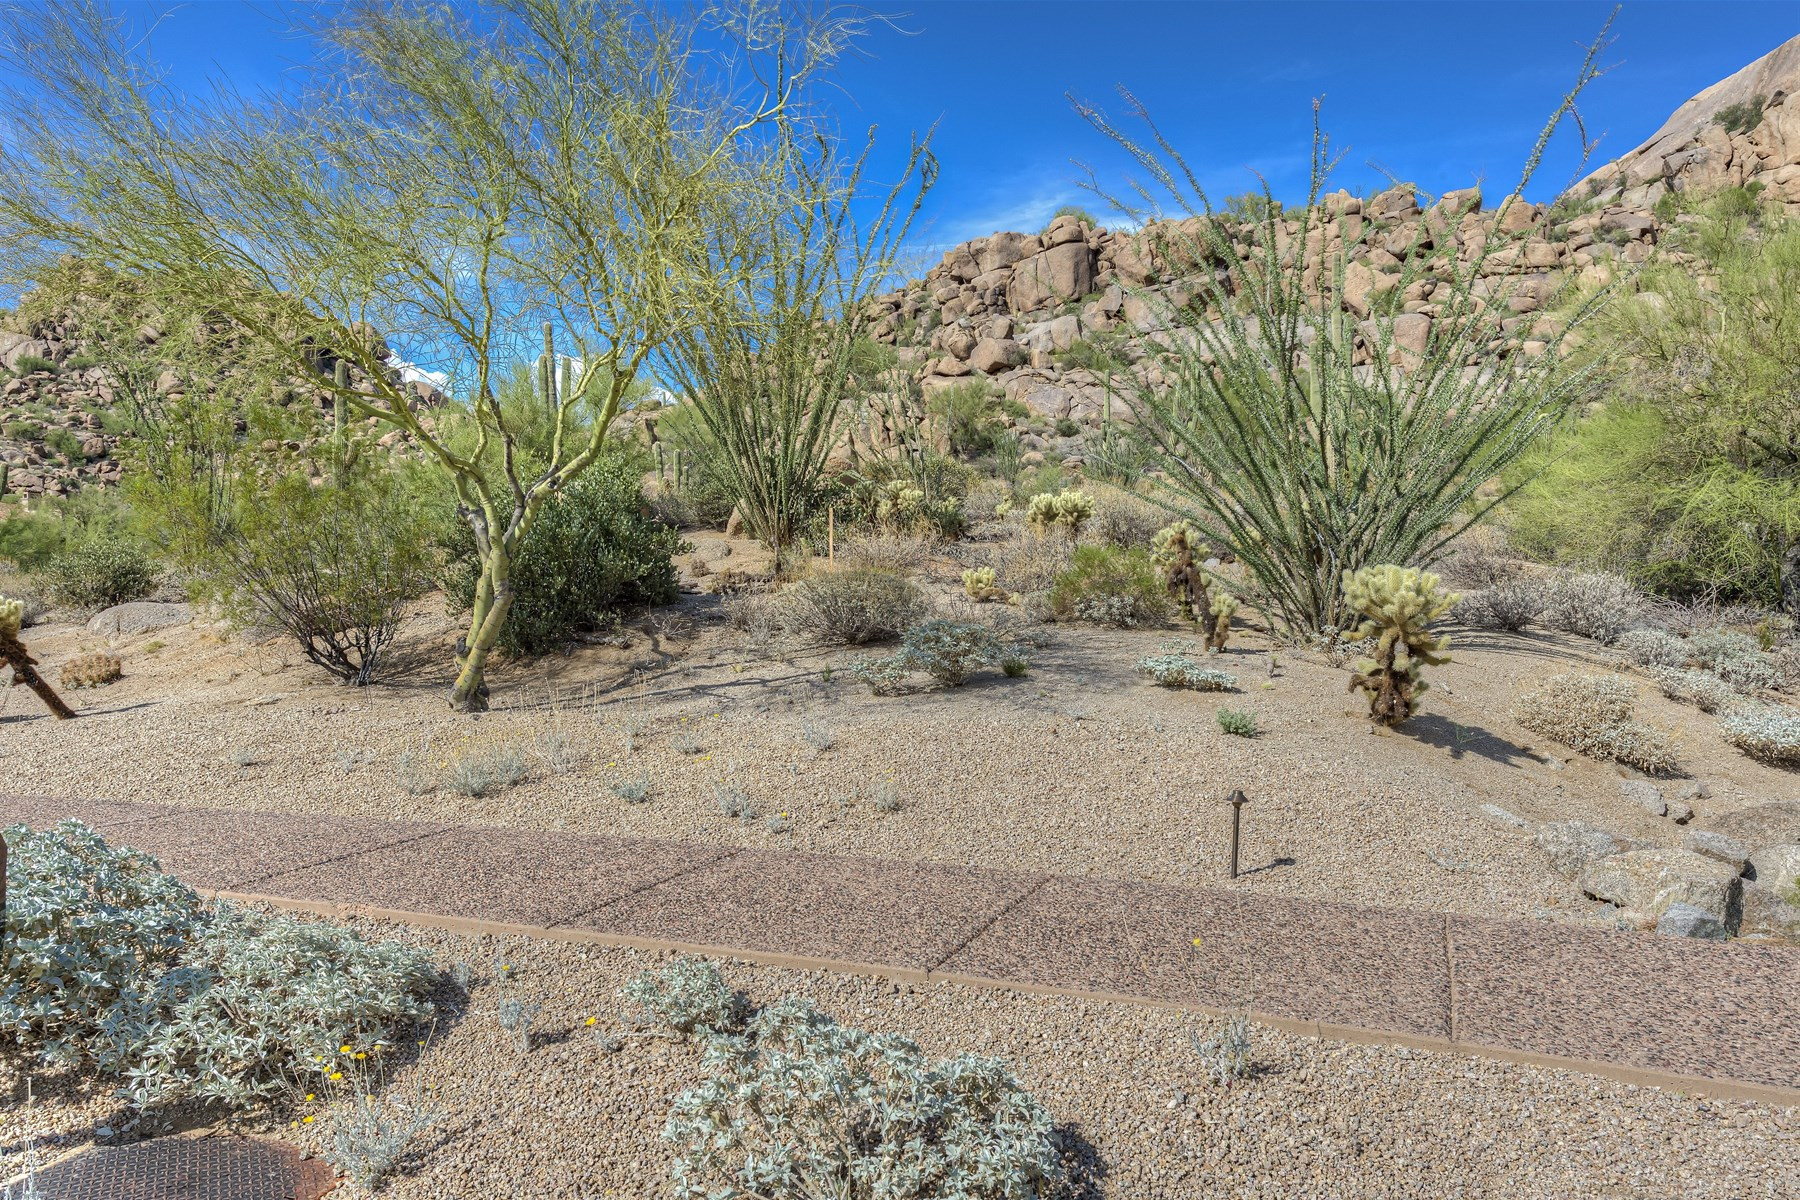 Land for Sale at Nestled on the side of a spectacular mountain. 10585 E CRESCENT MOON DR 46 Scottsdale, Arizona 85262 United States